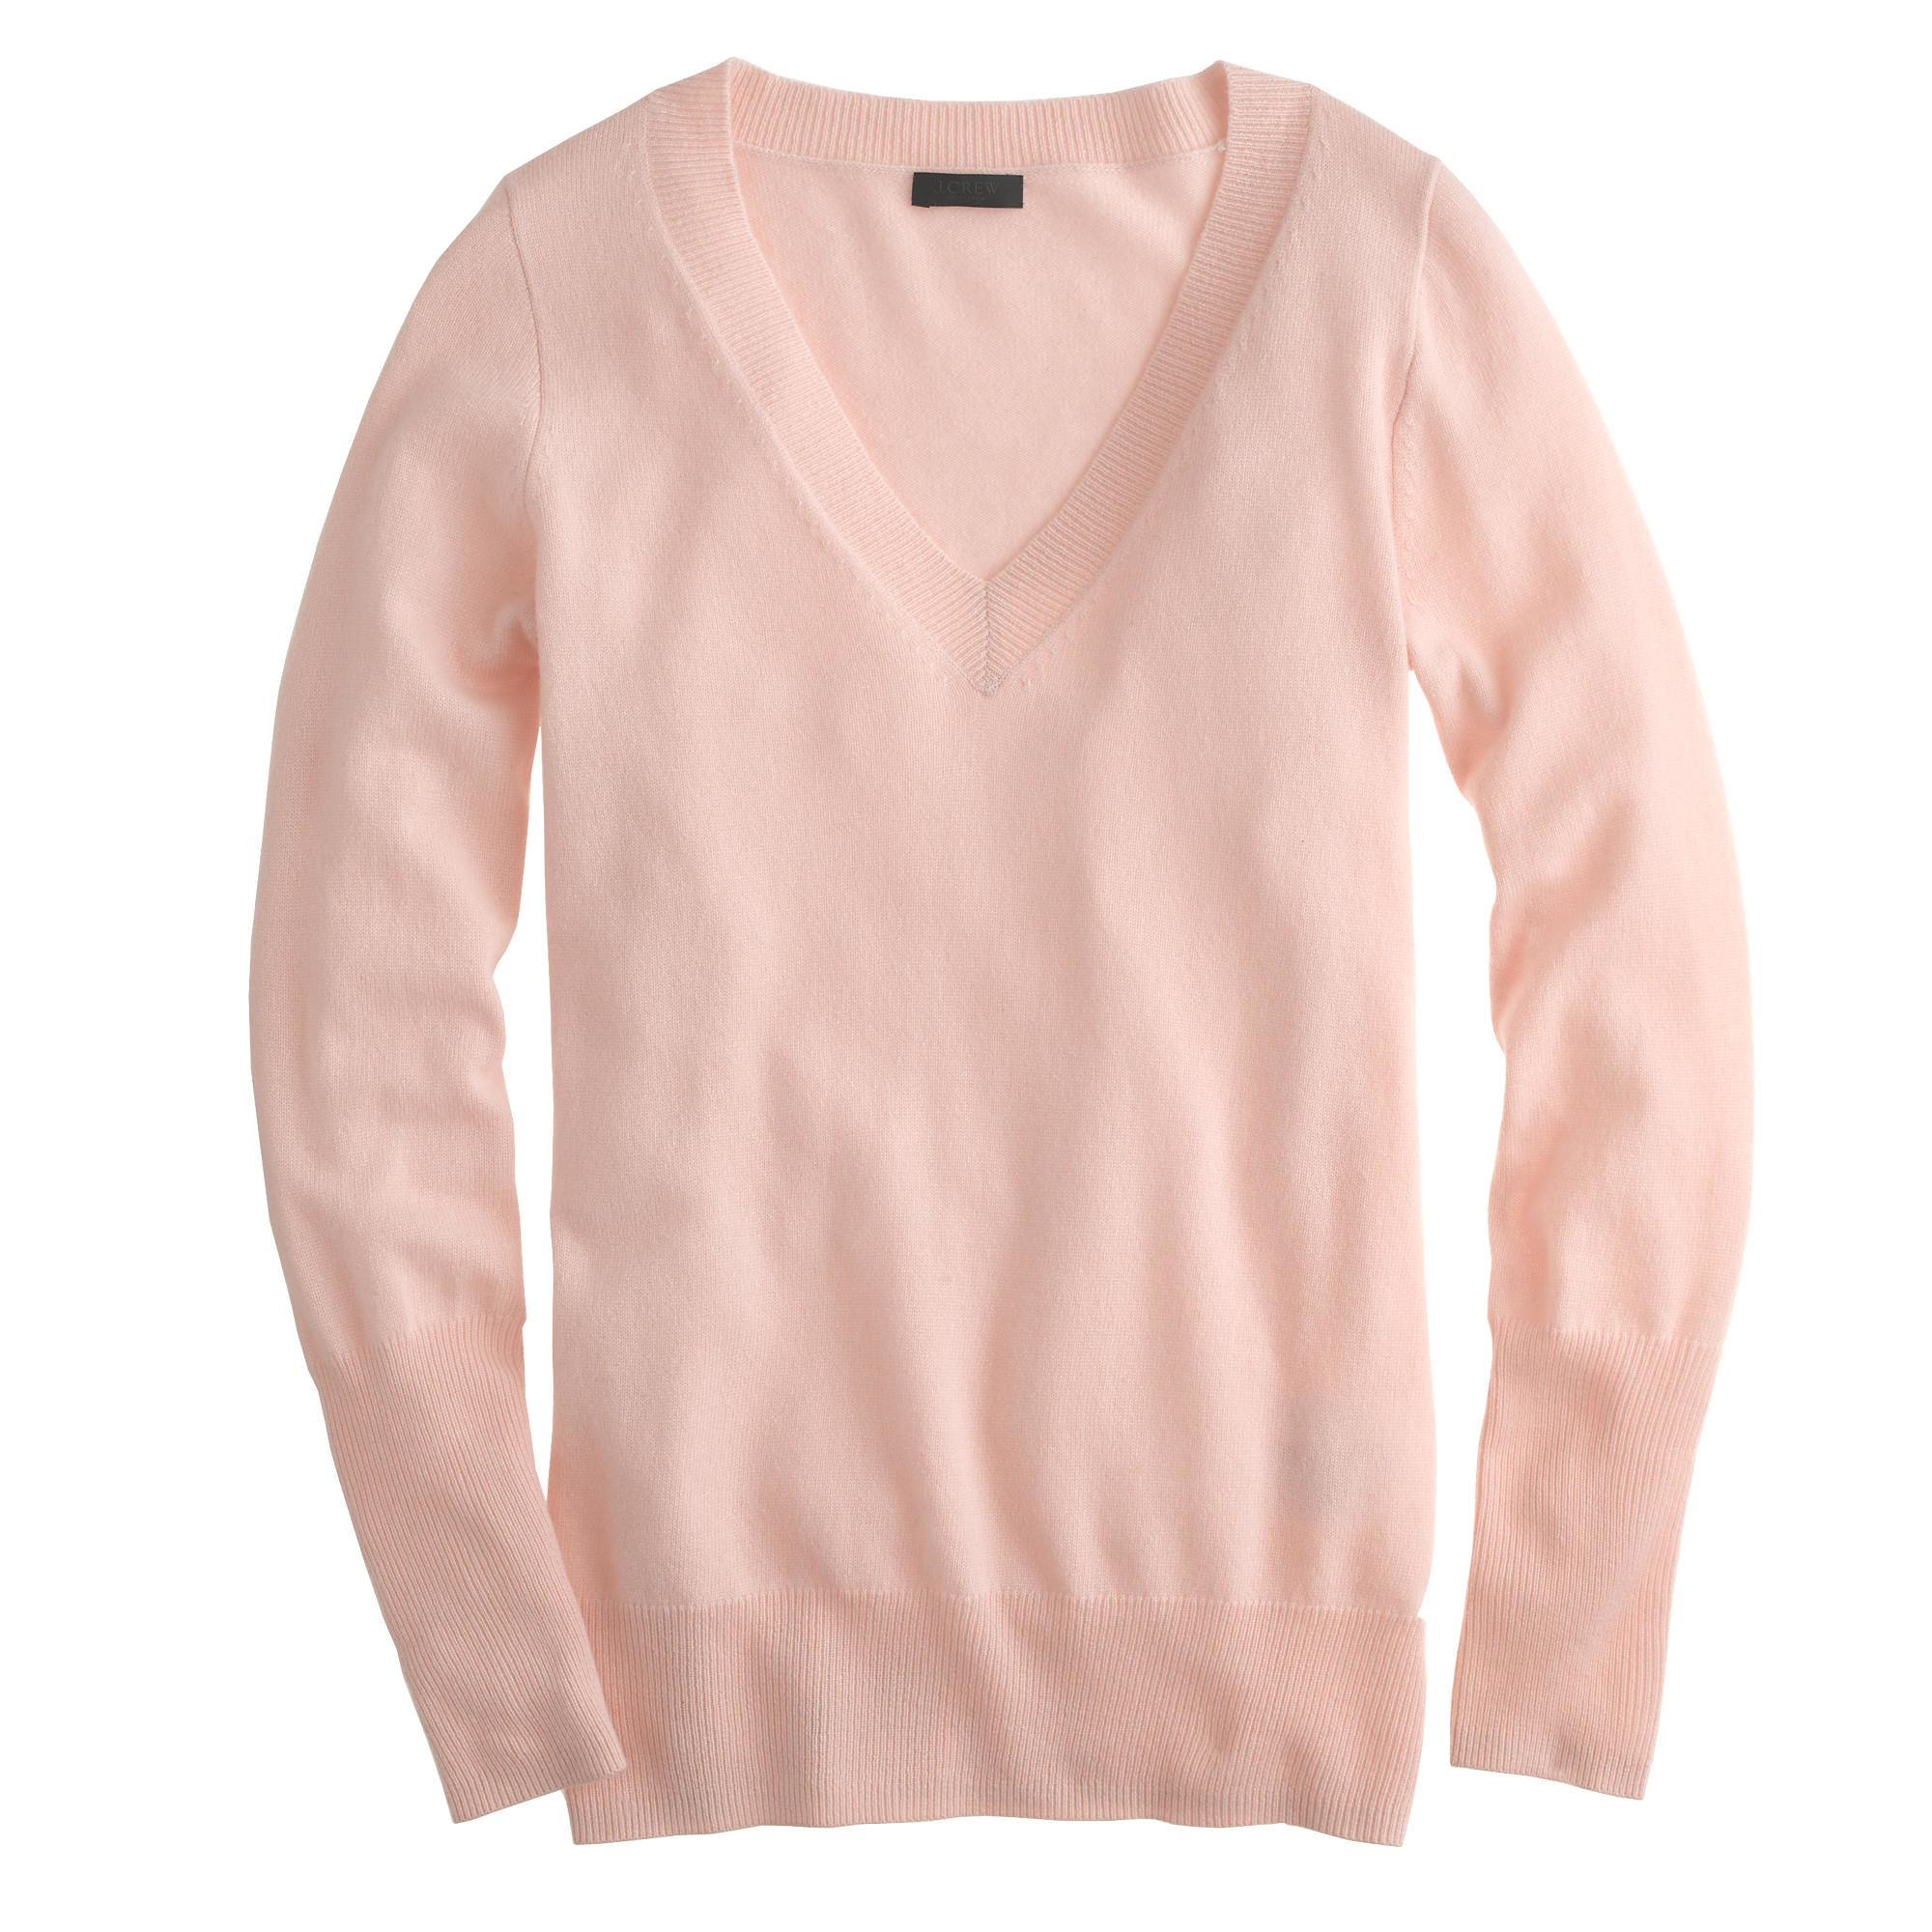 J.crew Italian Cashmere V-neck Sweater in Pink | Lyst